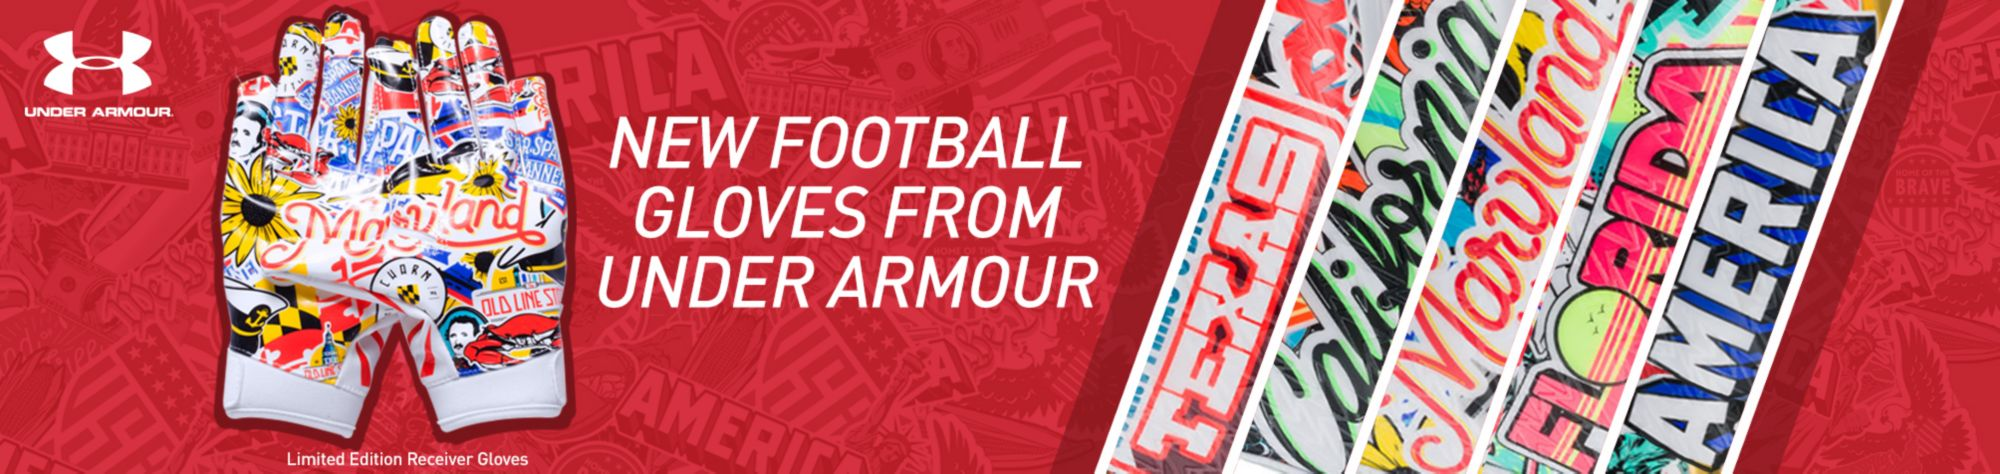 Shop Under Armour Football Gloves